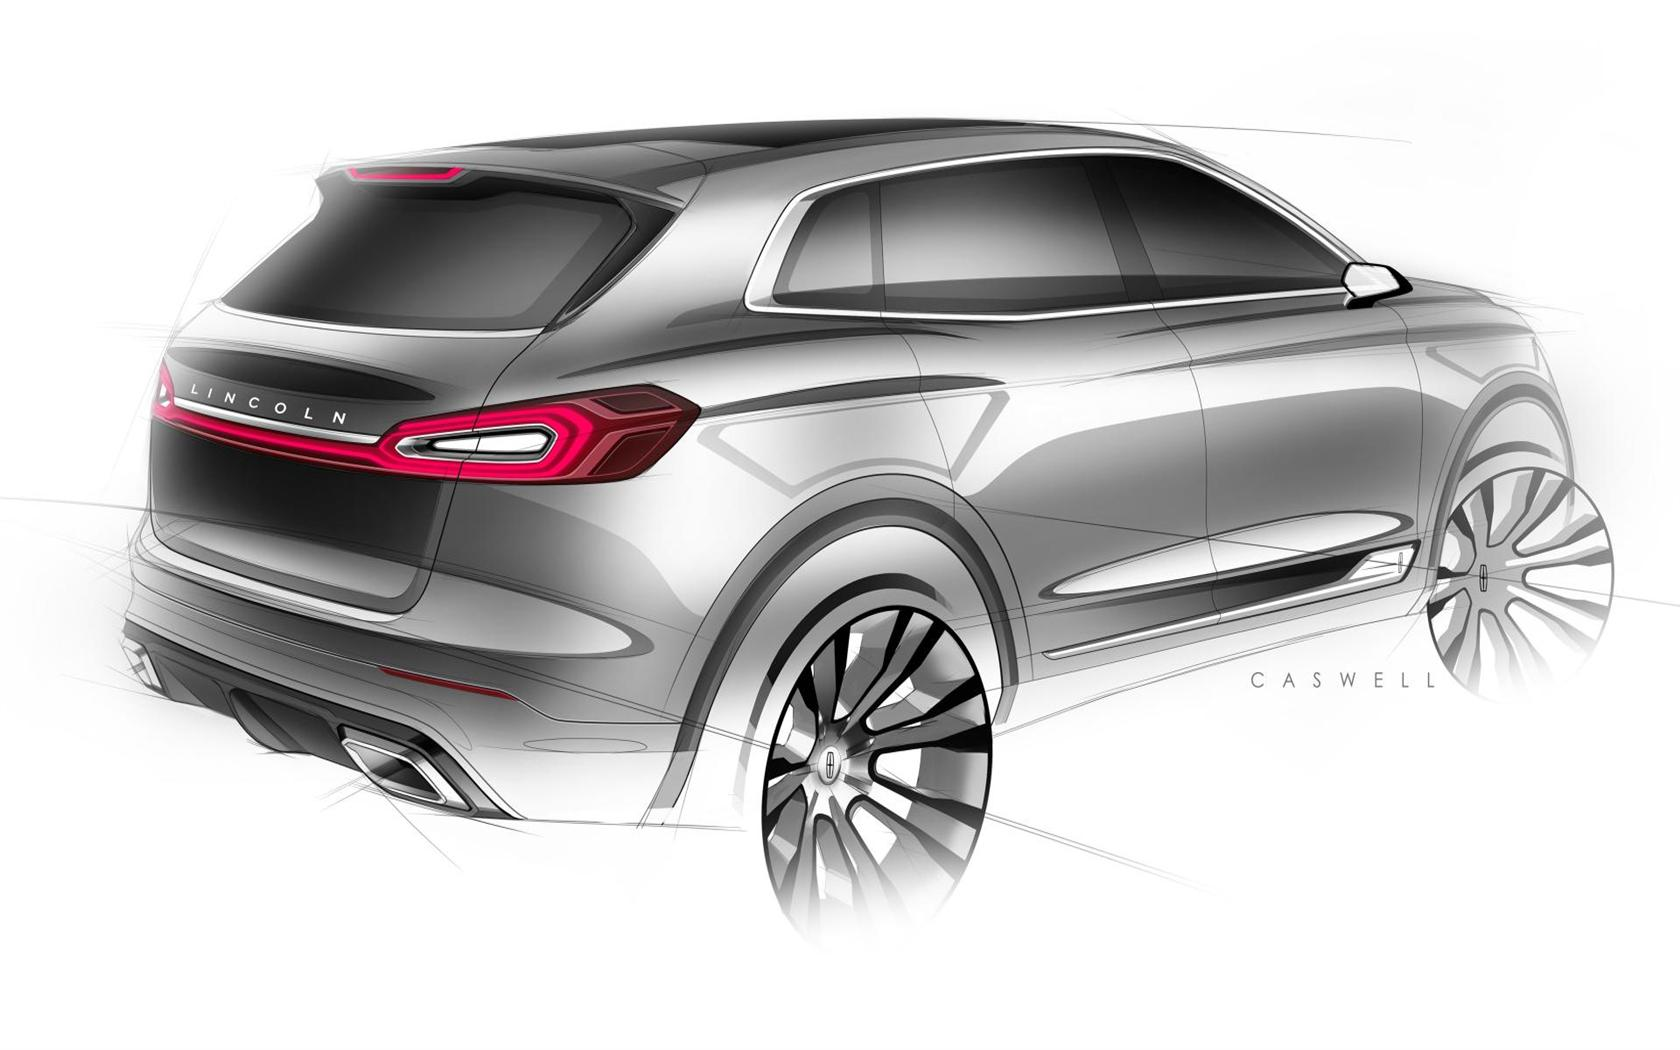 2015 Lincoln MKX Concept Images. Photo: Lincoln-MKX_Concept-2015-Photo